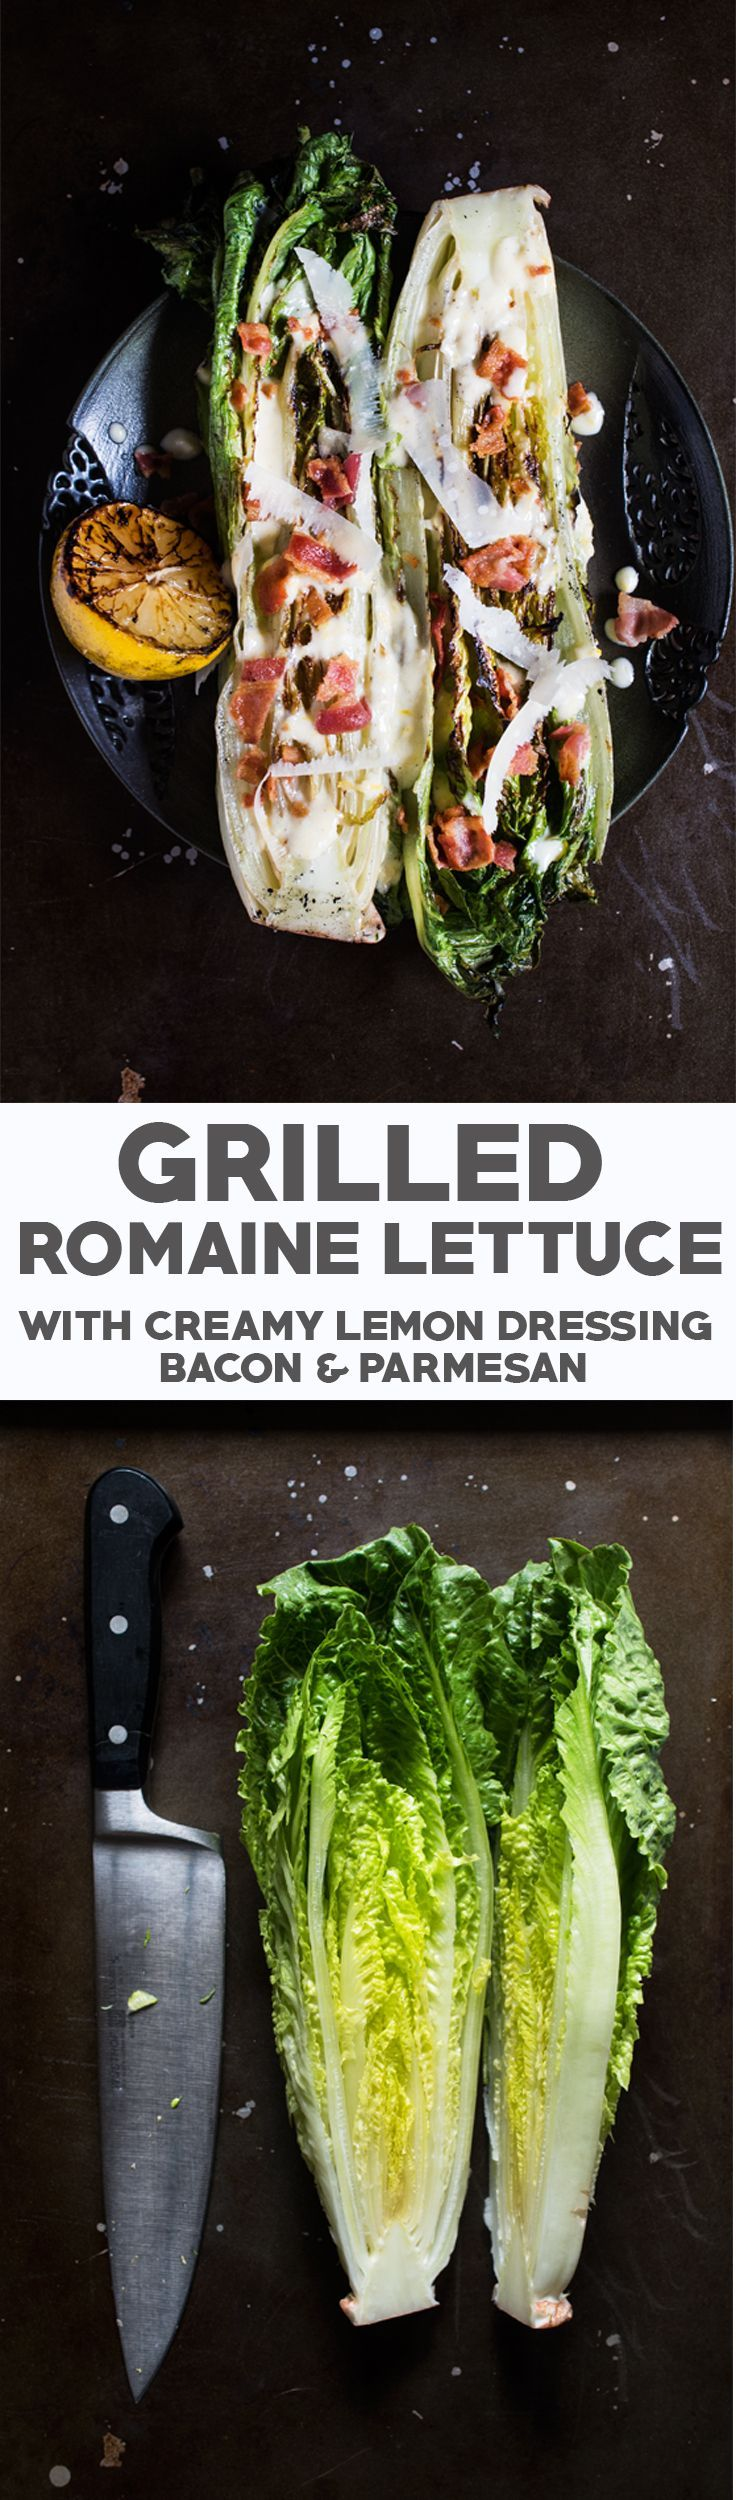 Char grilled romaine hearts, tangy dressing, crispy bacon, and nutty parmesan cheese.